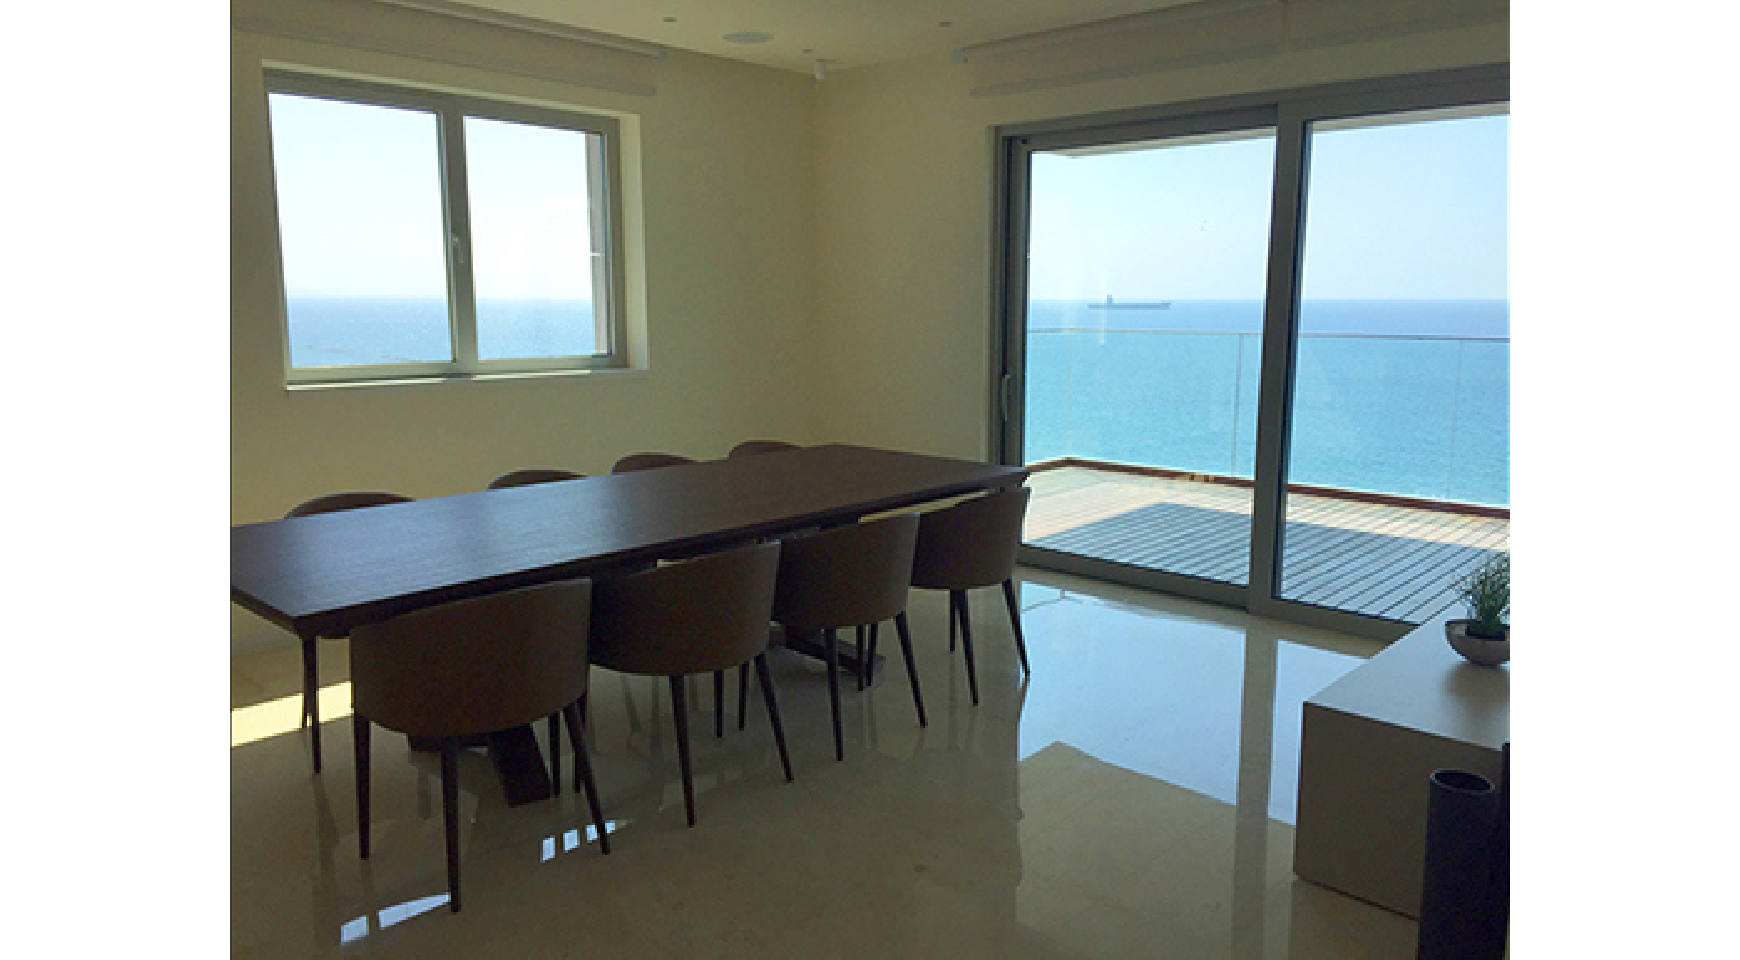 Spacious 3 Bedroom Apartment in an Exclusive Development near the Sea  - 2